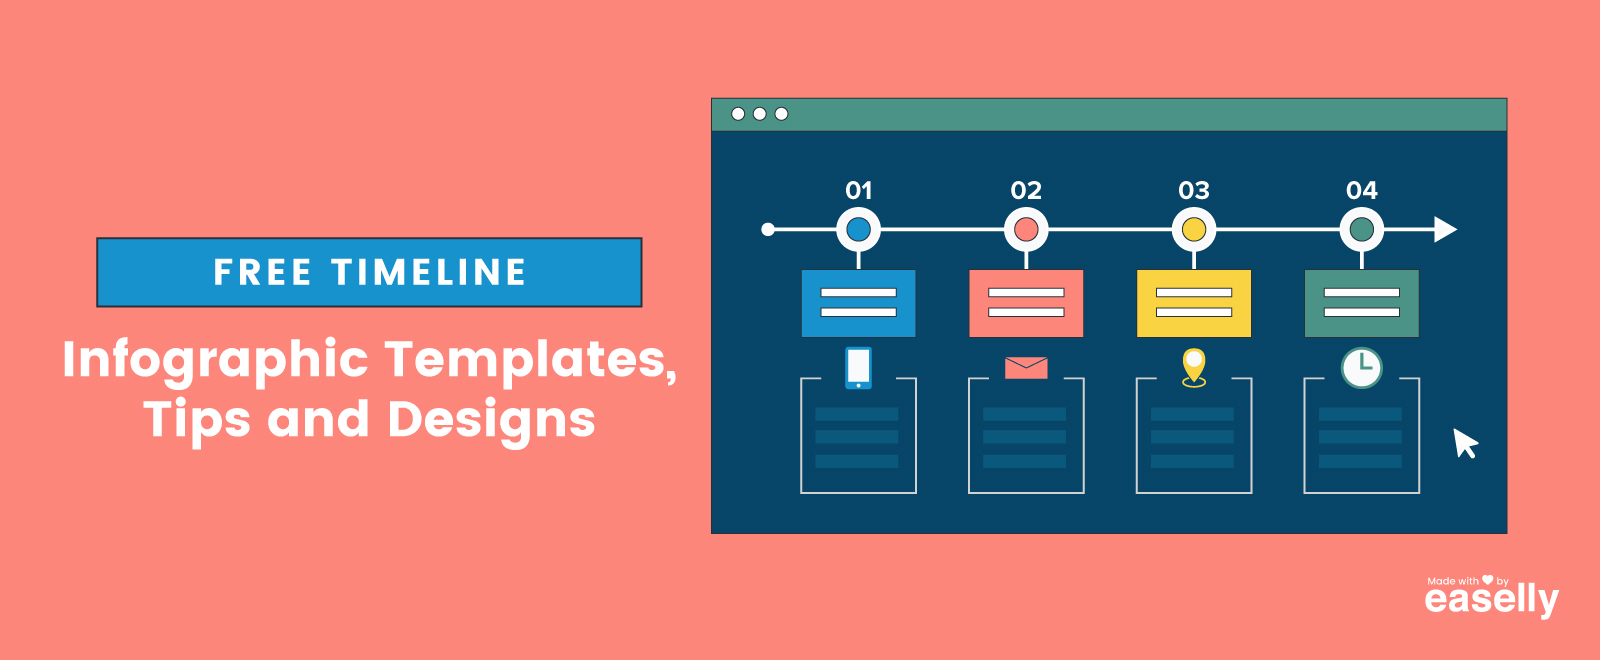 Free Timeline Infographic Templates, Tips and Designs Easelly